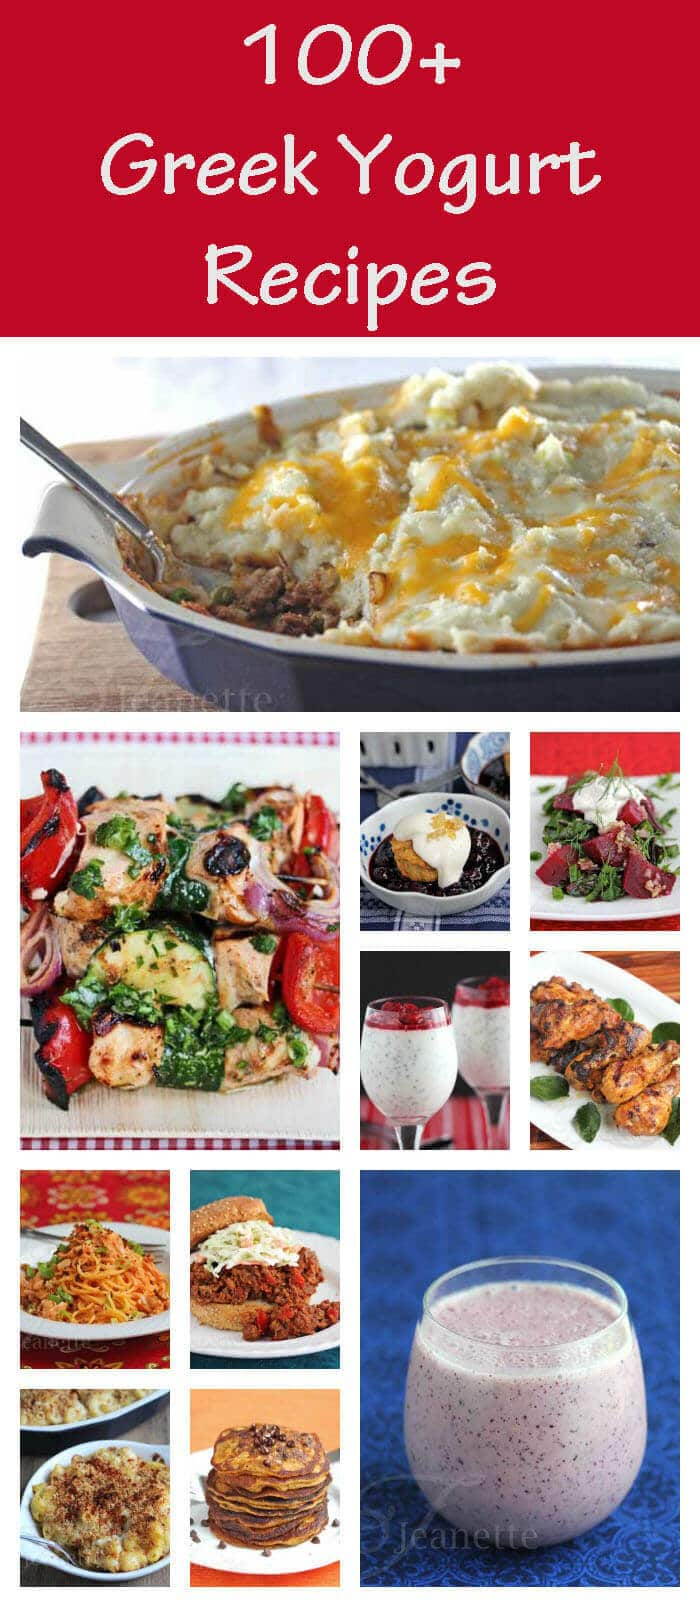 100+ Greek Yogurt Recipes - How To Use Greek Yogurt in Sweet and Savory Recipes as a Healthy Substitute